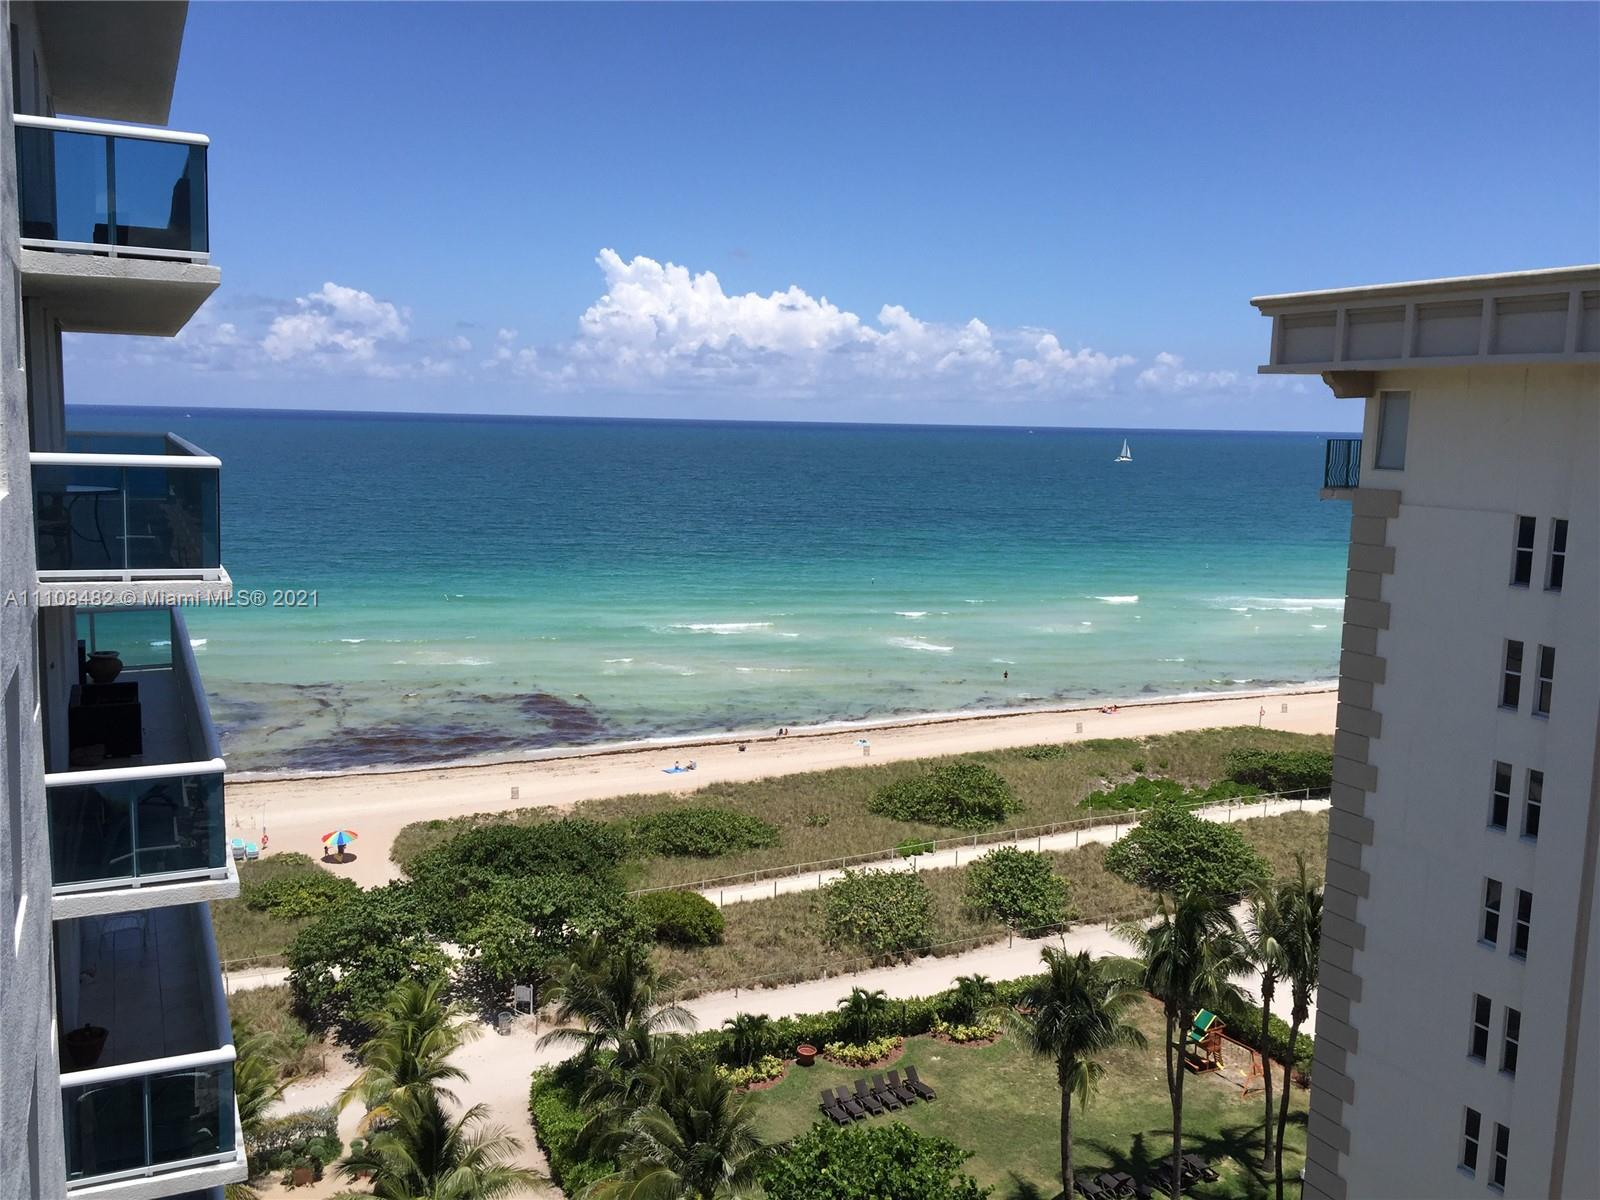 Enjoy beautiful views of ocean & Intracoastal from this 2 bedroom, 2 bath condo located on the beach in Surfside. All new appliances, new paint, lots of natural light. Newly updated boutique building with new pool & deck, new roof & balconies, new doors, new floors in common areas & 2 parking spaces. Great Building Amenities: Heated Pool with Jacuzzi, Ocean Lounge, Chairs and Umbrella Service, Barbecue, Beach Volleyball, Fully Equipped Fitness Center, Billiard Room, WIFI in Common Area, Bike Storage. Located in the heart of Surfside walking distance to Bal Harbour Shops, Publix, Restaurants, Surfside Community Center and much more. **Special Assessment $329 per month through December 2023.